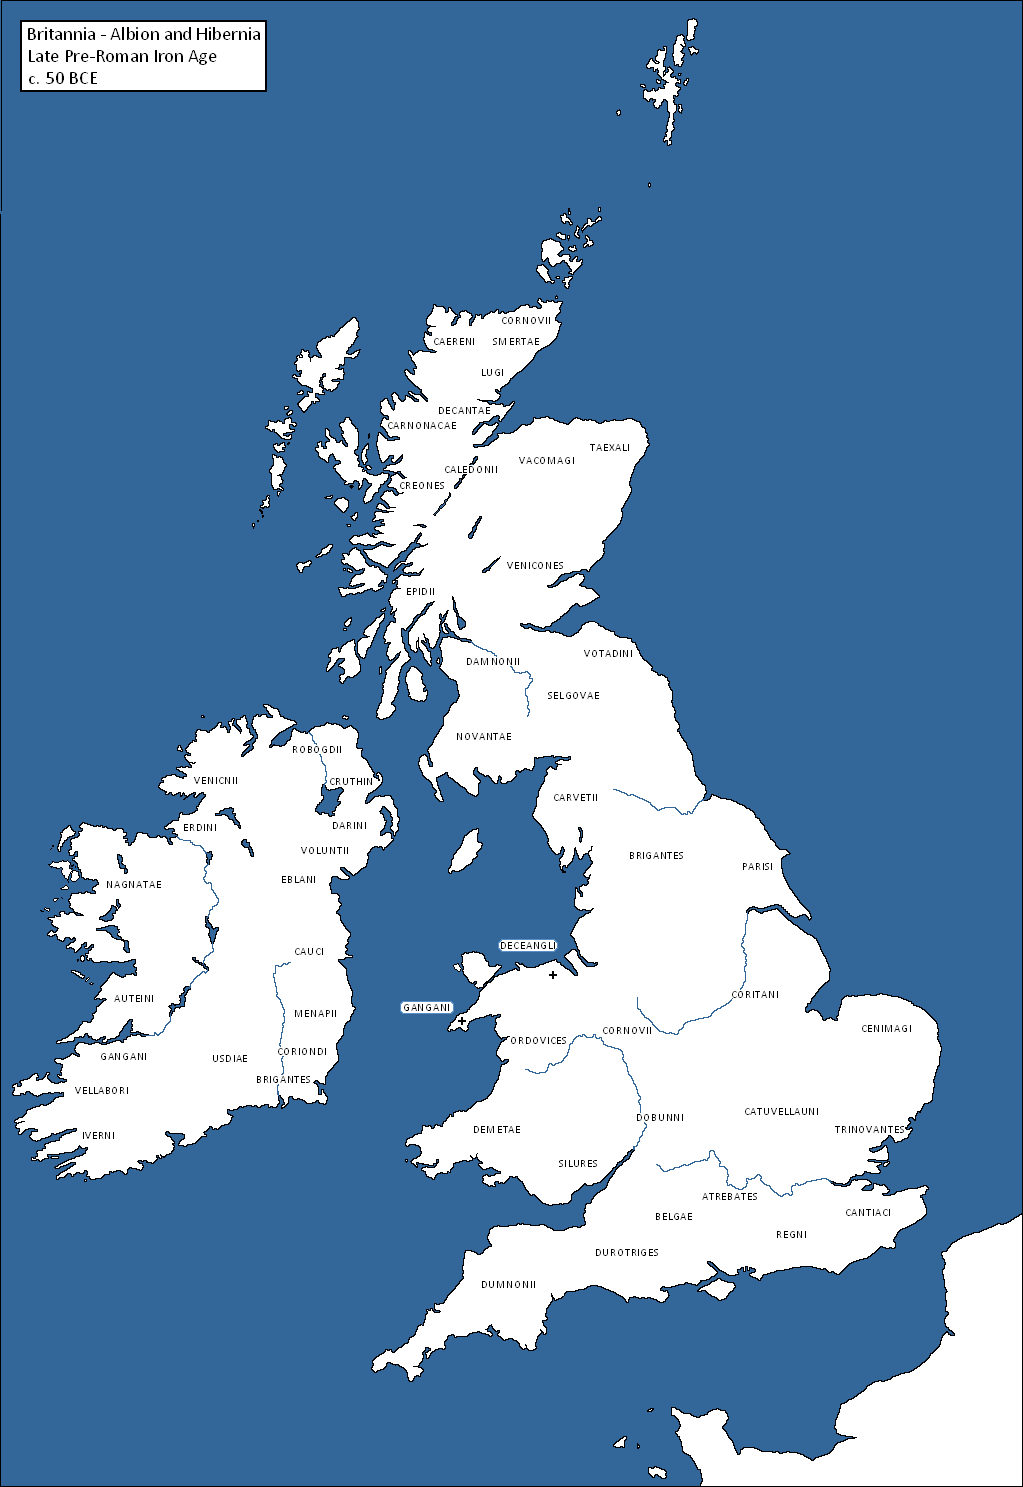 File:Map   Peoples of Britain and Ireland 50BCE.PNG   Wikimedia